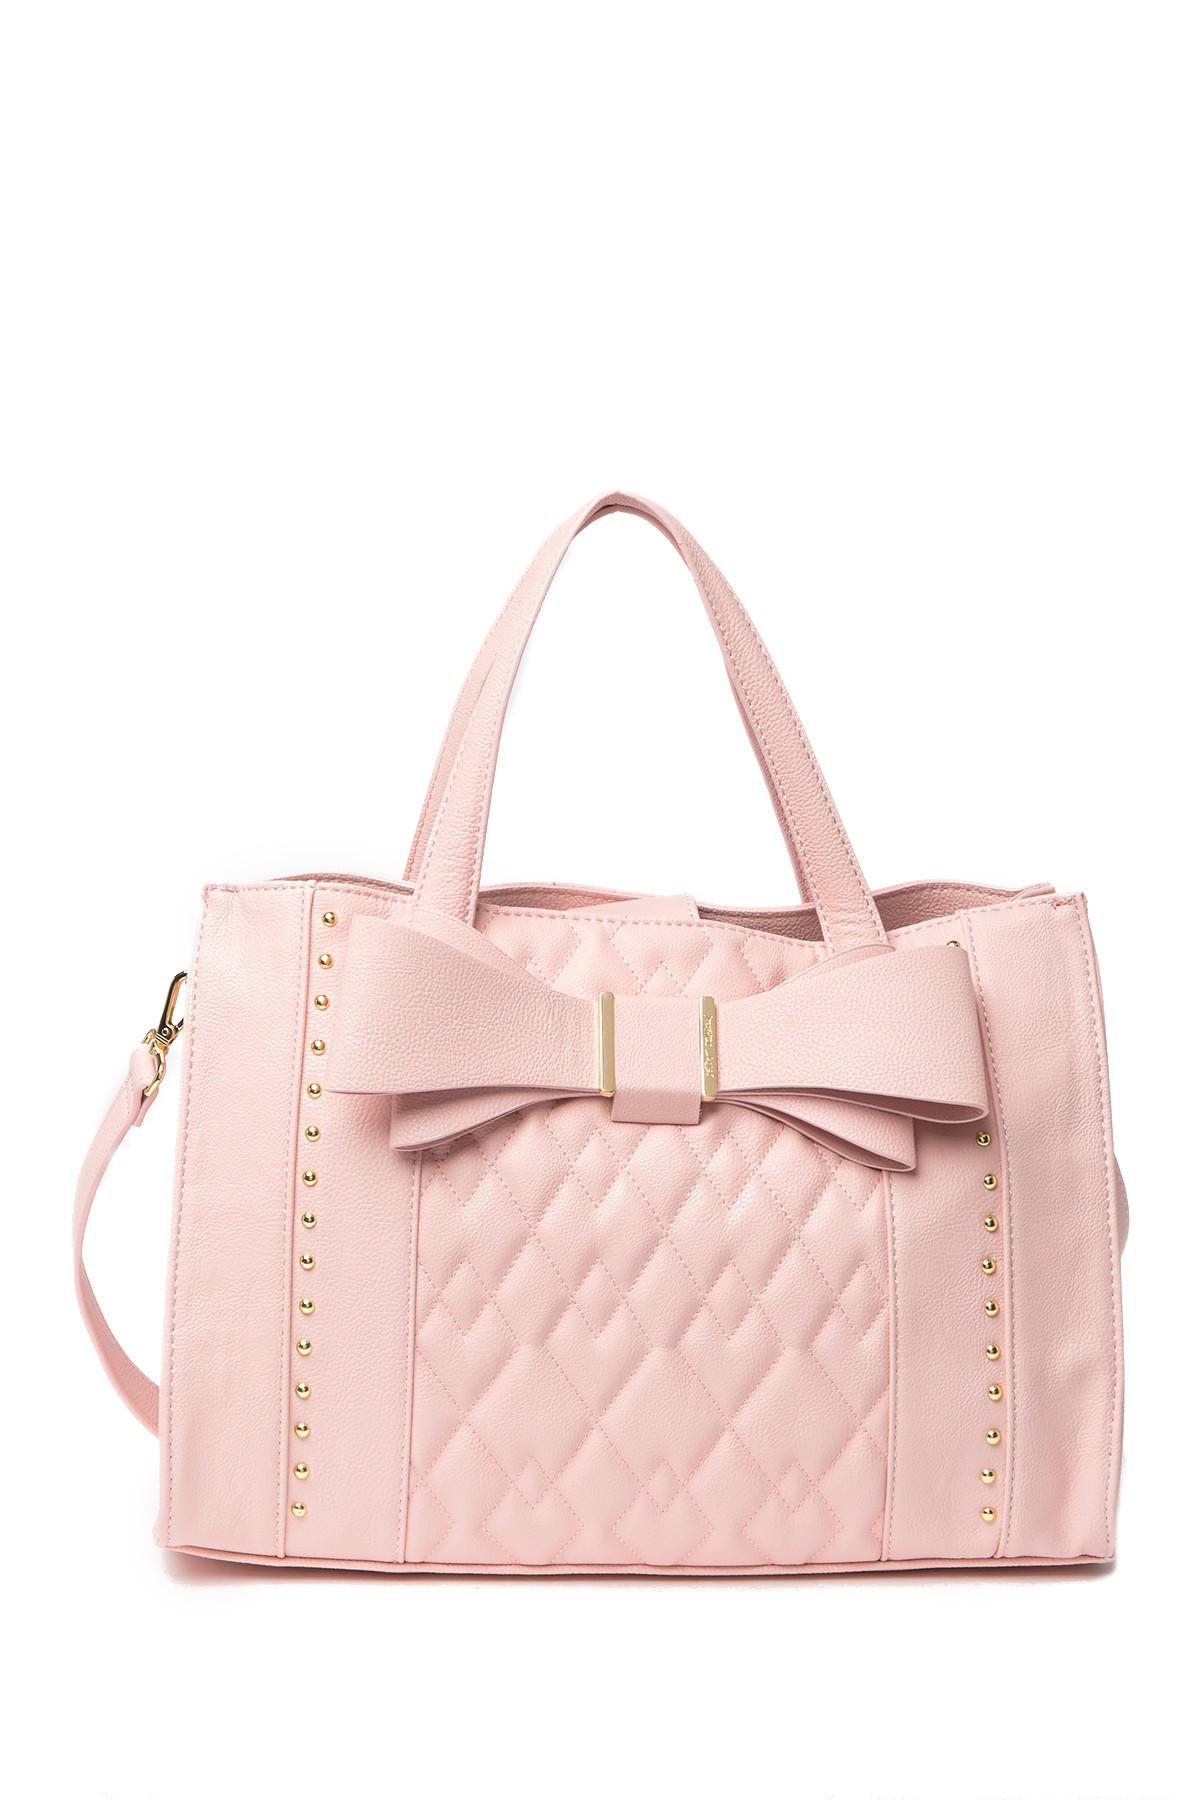 11468834c8 Lyst - Betsey Johnson Quilted Bow Satchel in Pink